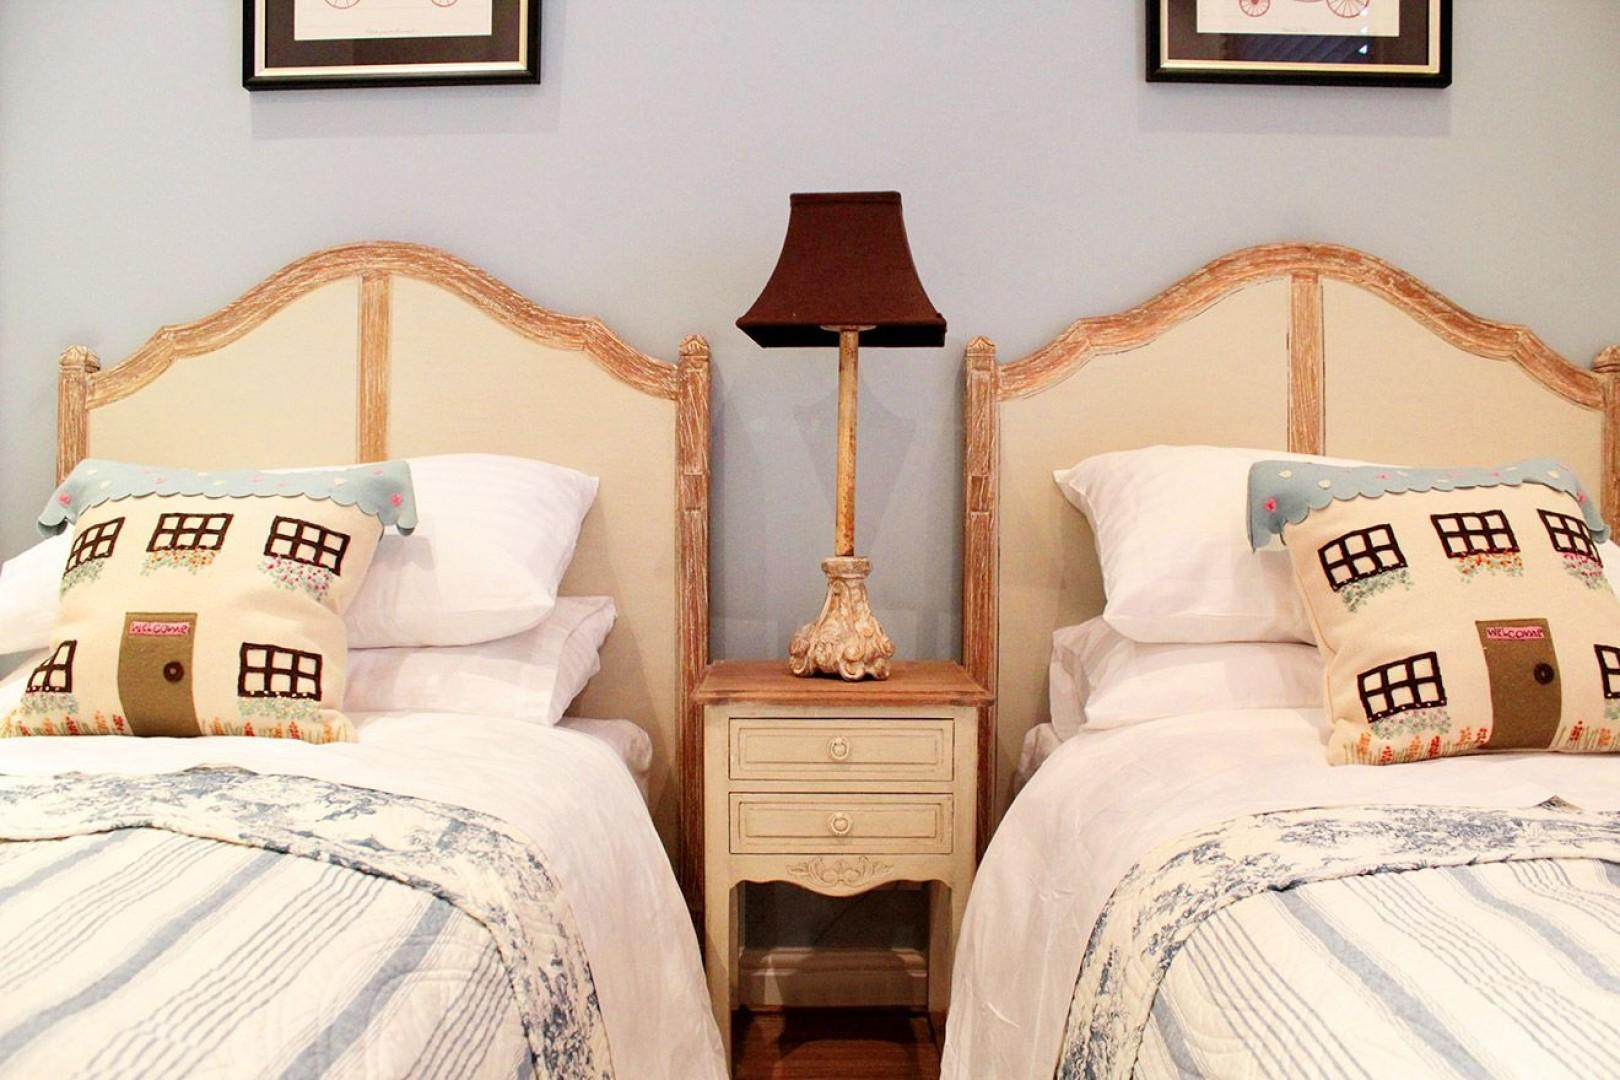 Two comfortable beds in the third bedroom